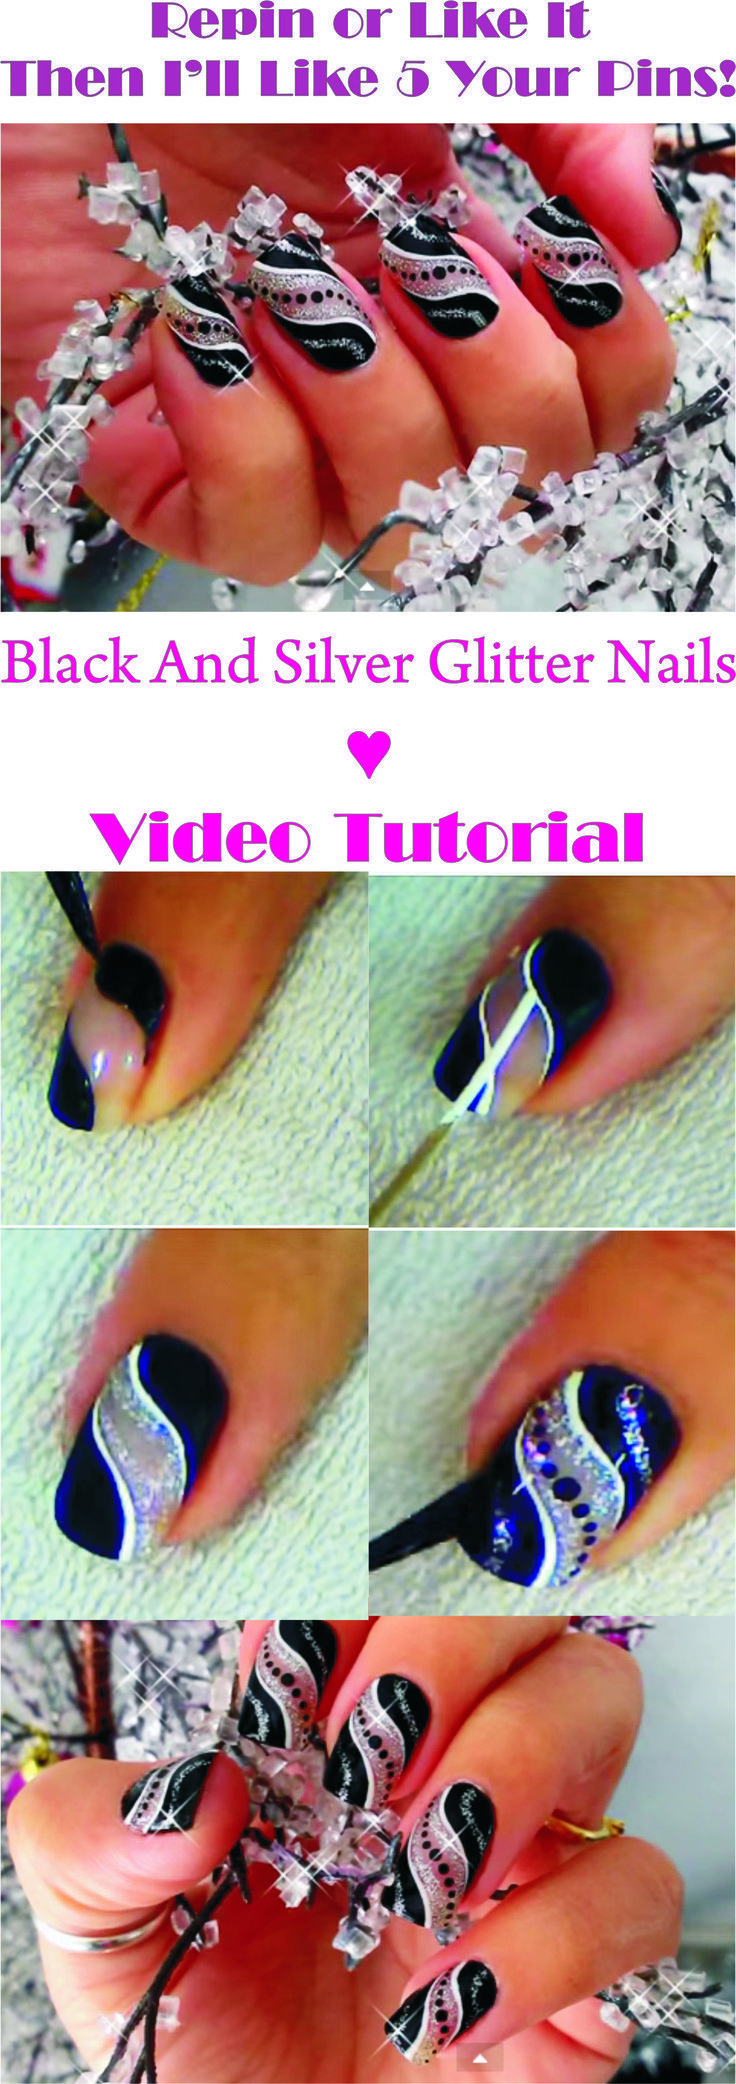 awesome ♥ Super Easy Party Nail Art | Black And Silver Glitter Nails ♥ ~ Beauty, Make Up And Nail Art Ideas